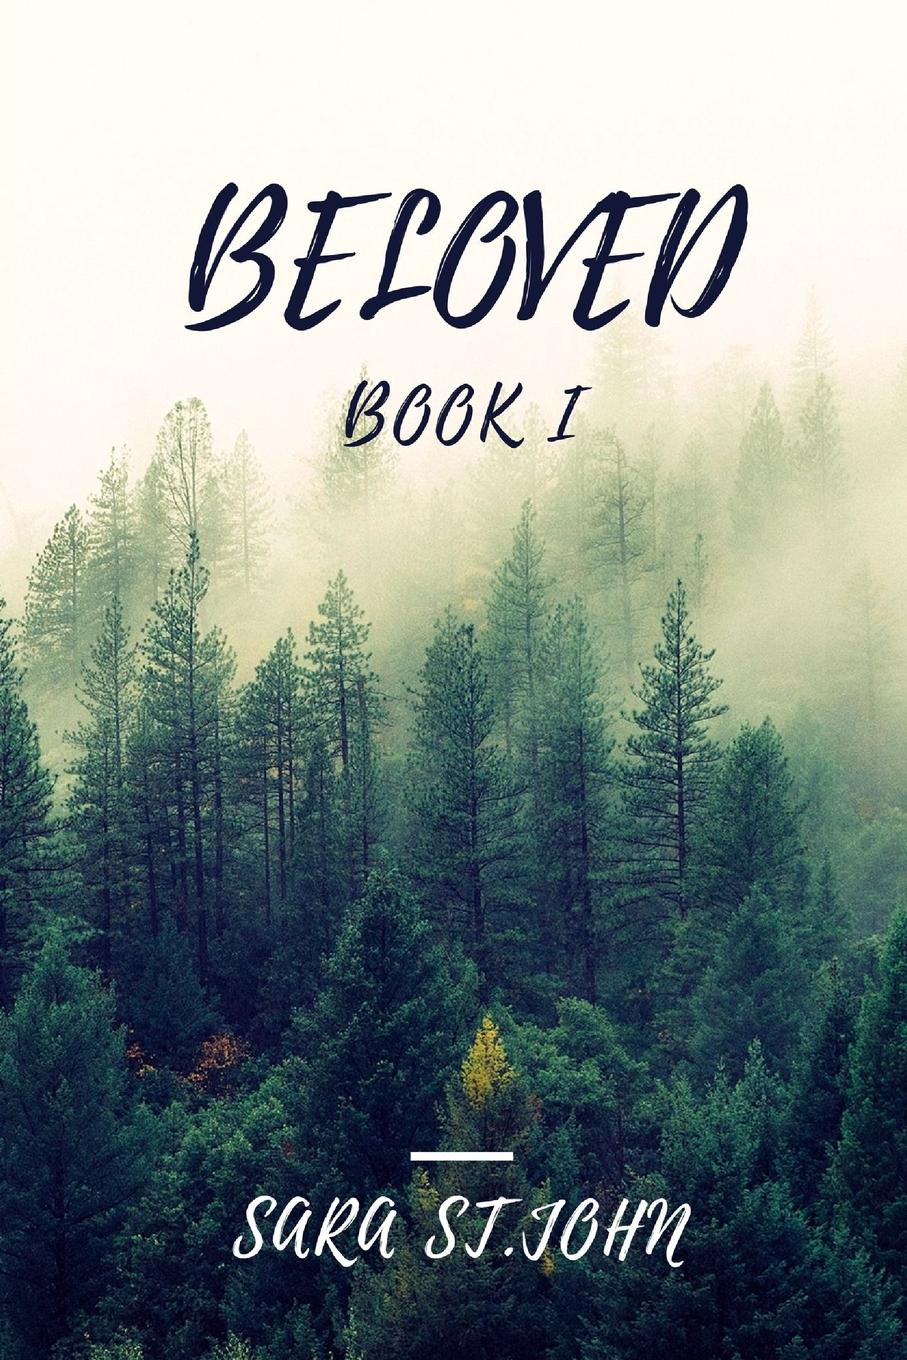 лучшая цена Sara St.John Beloved book I